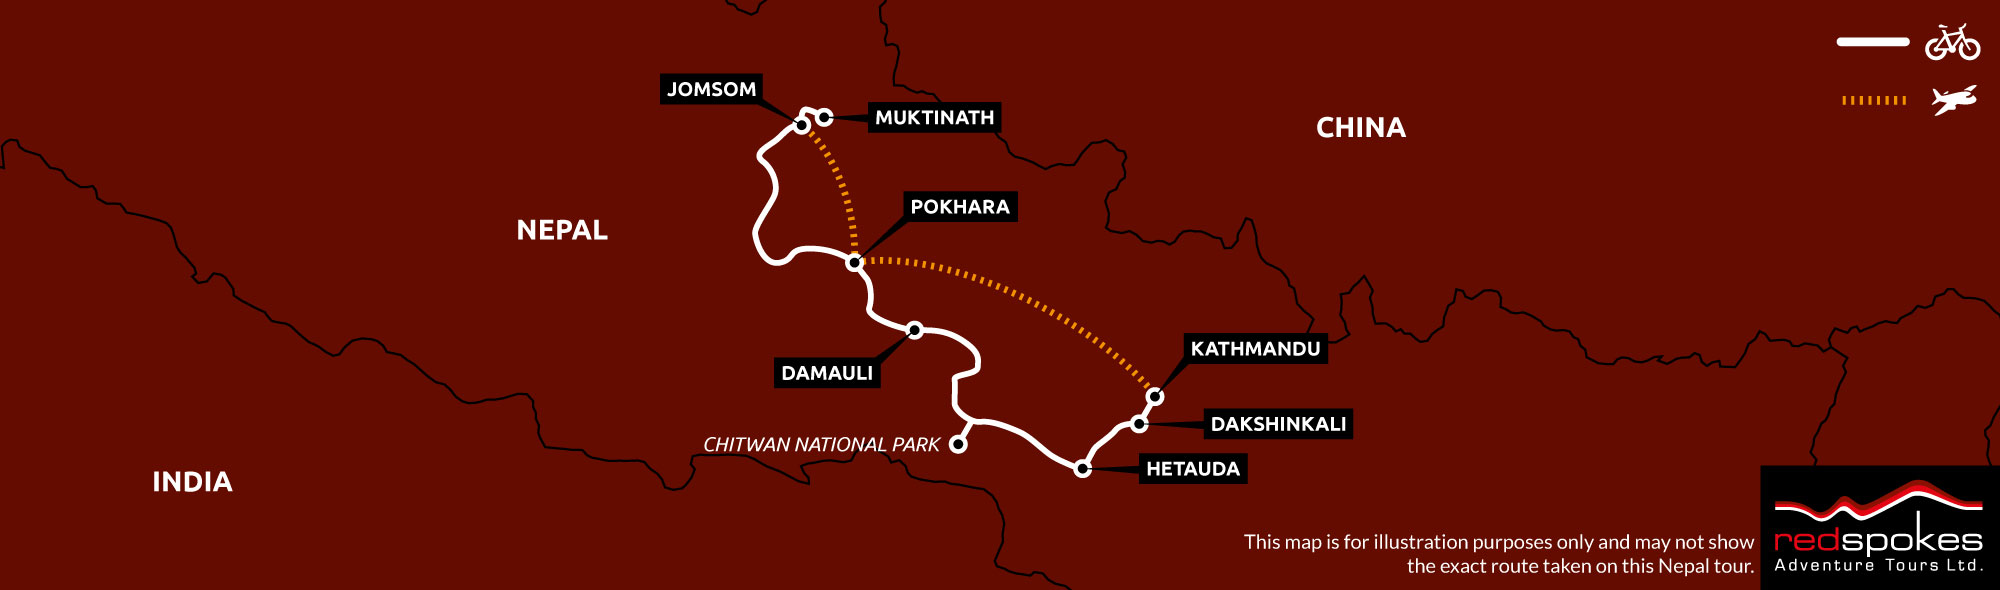 Example route for this Nepal cycling holiday